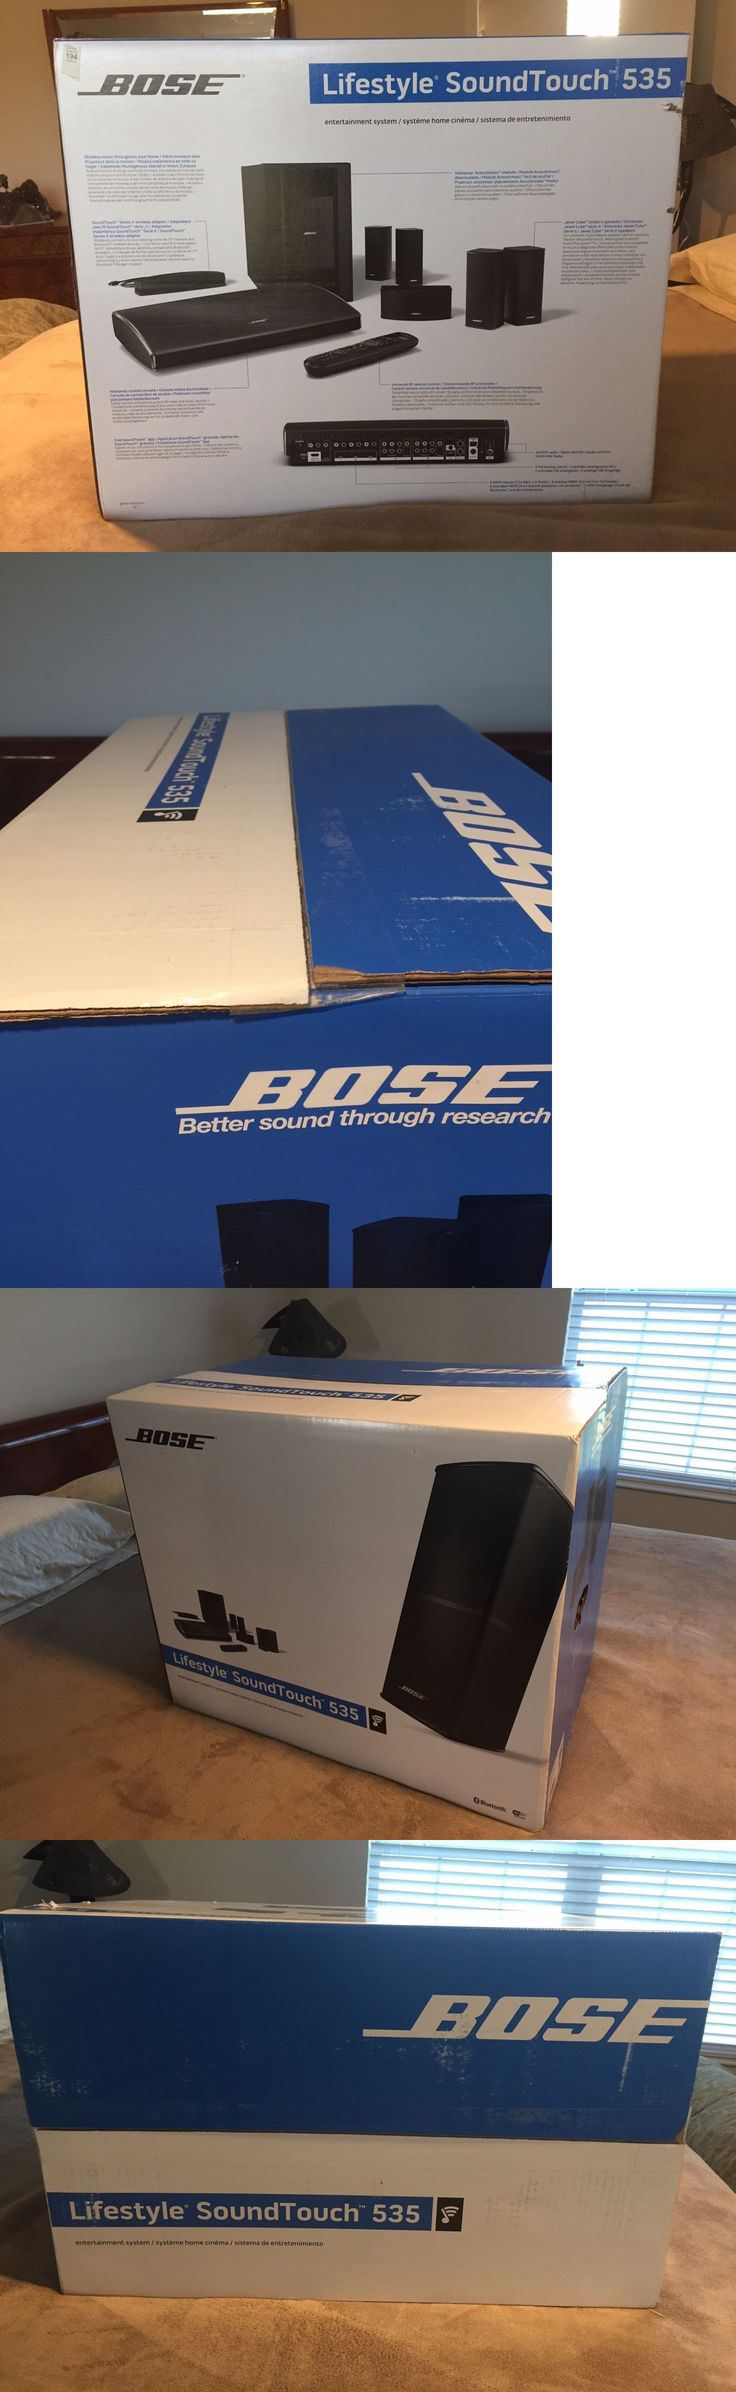 Home Theater Systems: Brand New Bose Lifestyle Soundtouch 535, Factory Sealed, Never Opened. -> BUY IT NOW ONLY: $2599 on eBay!